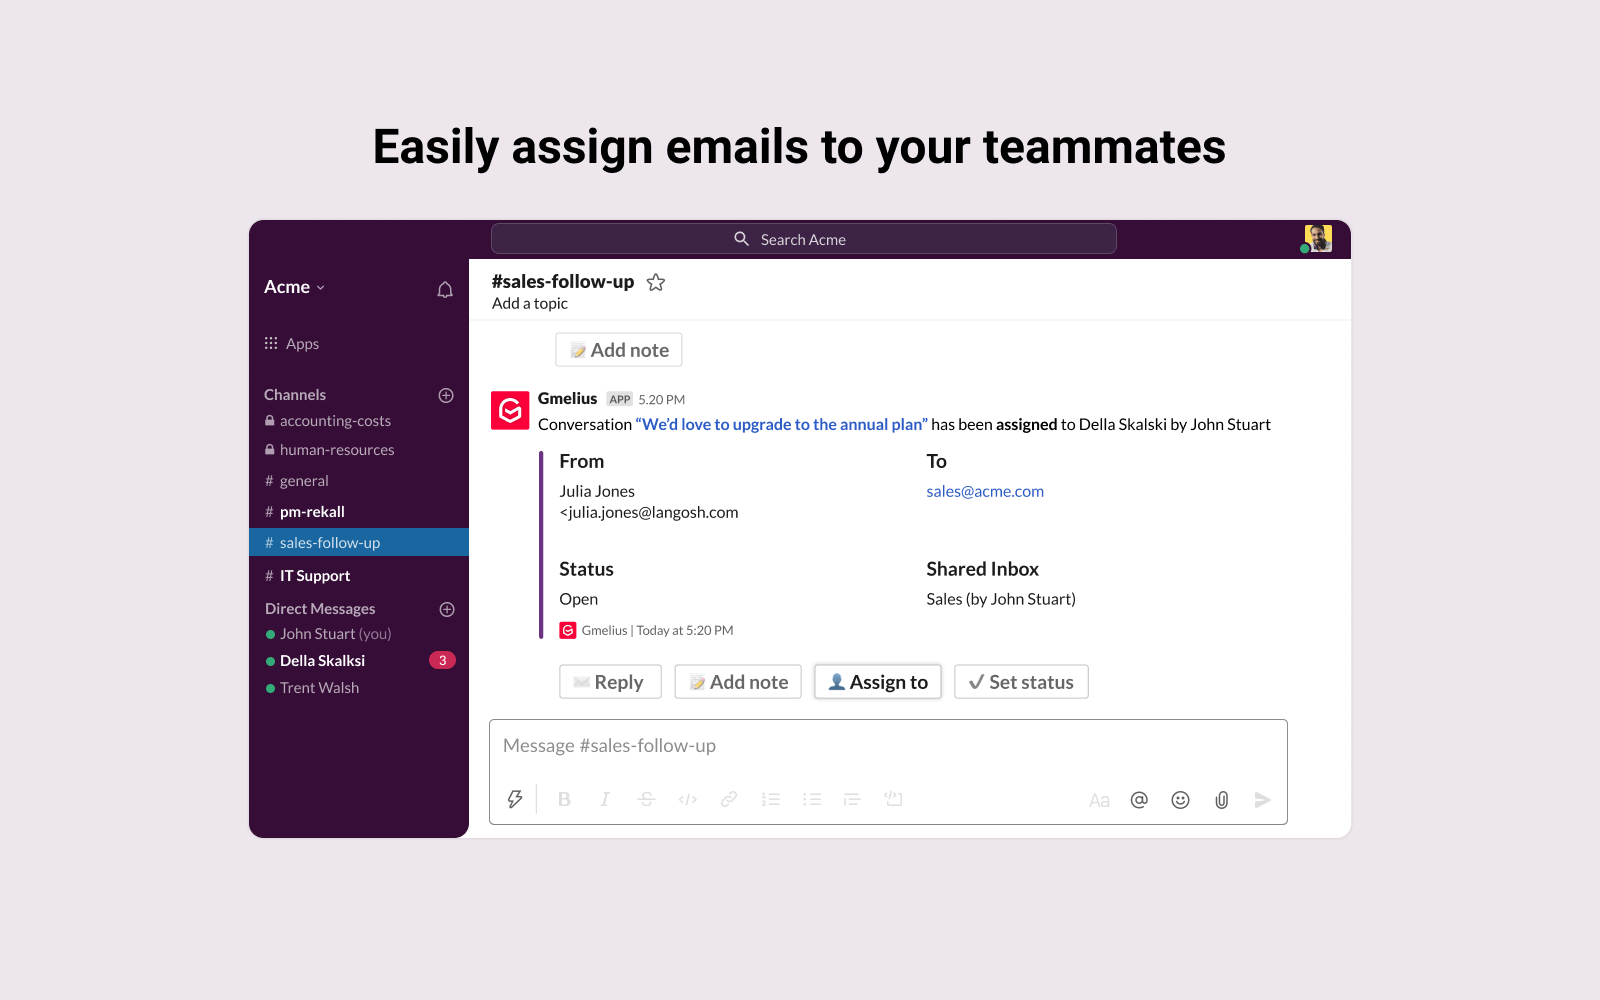 Easily assign emails to your teammates